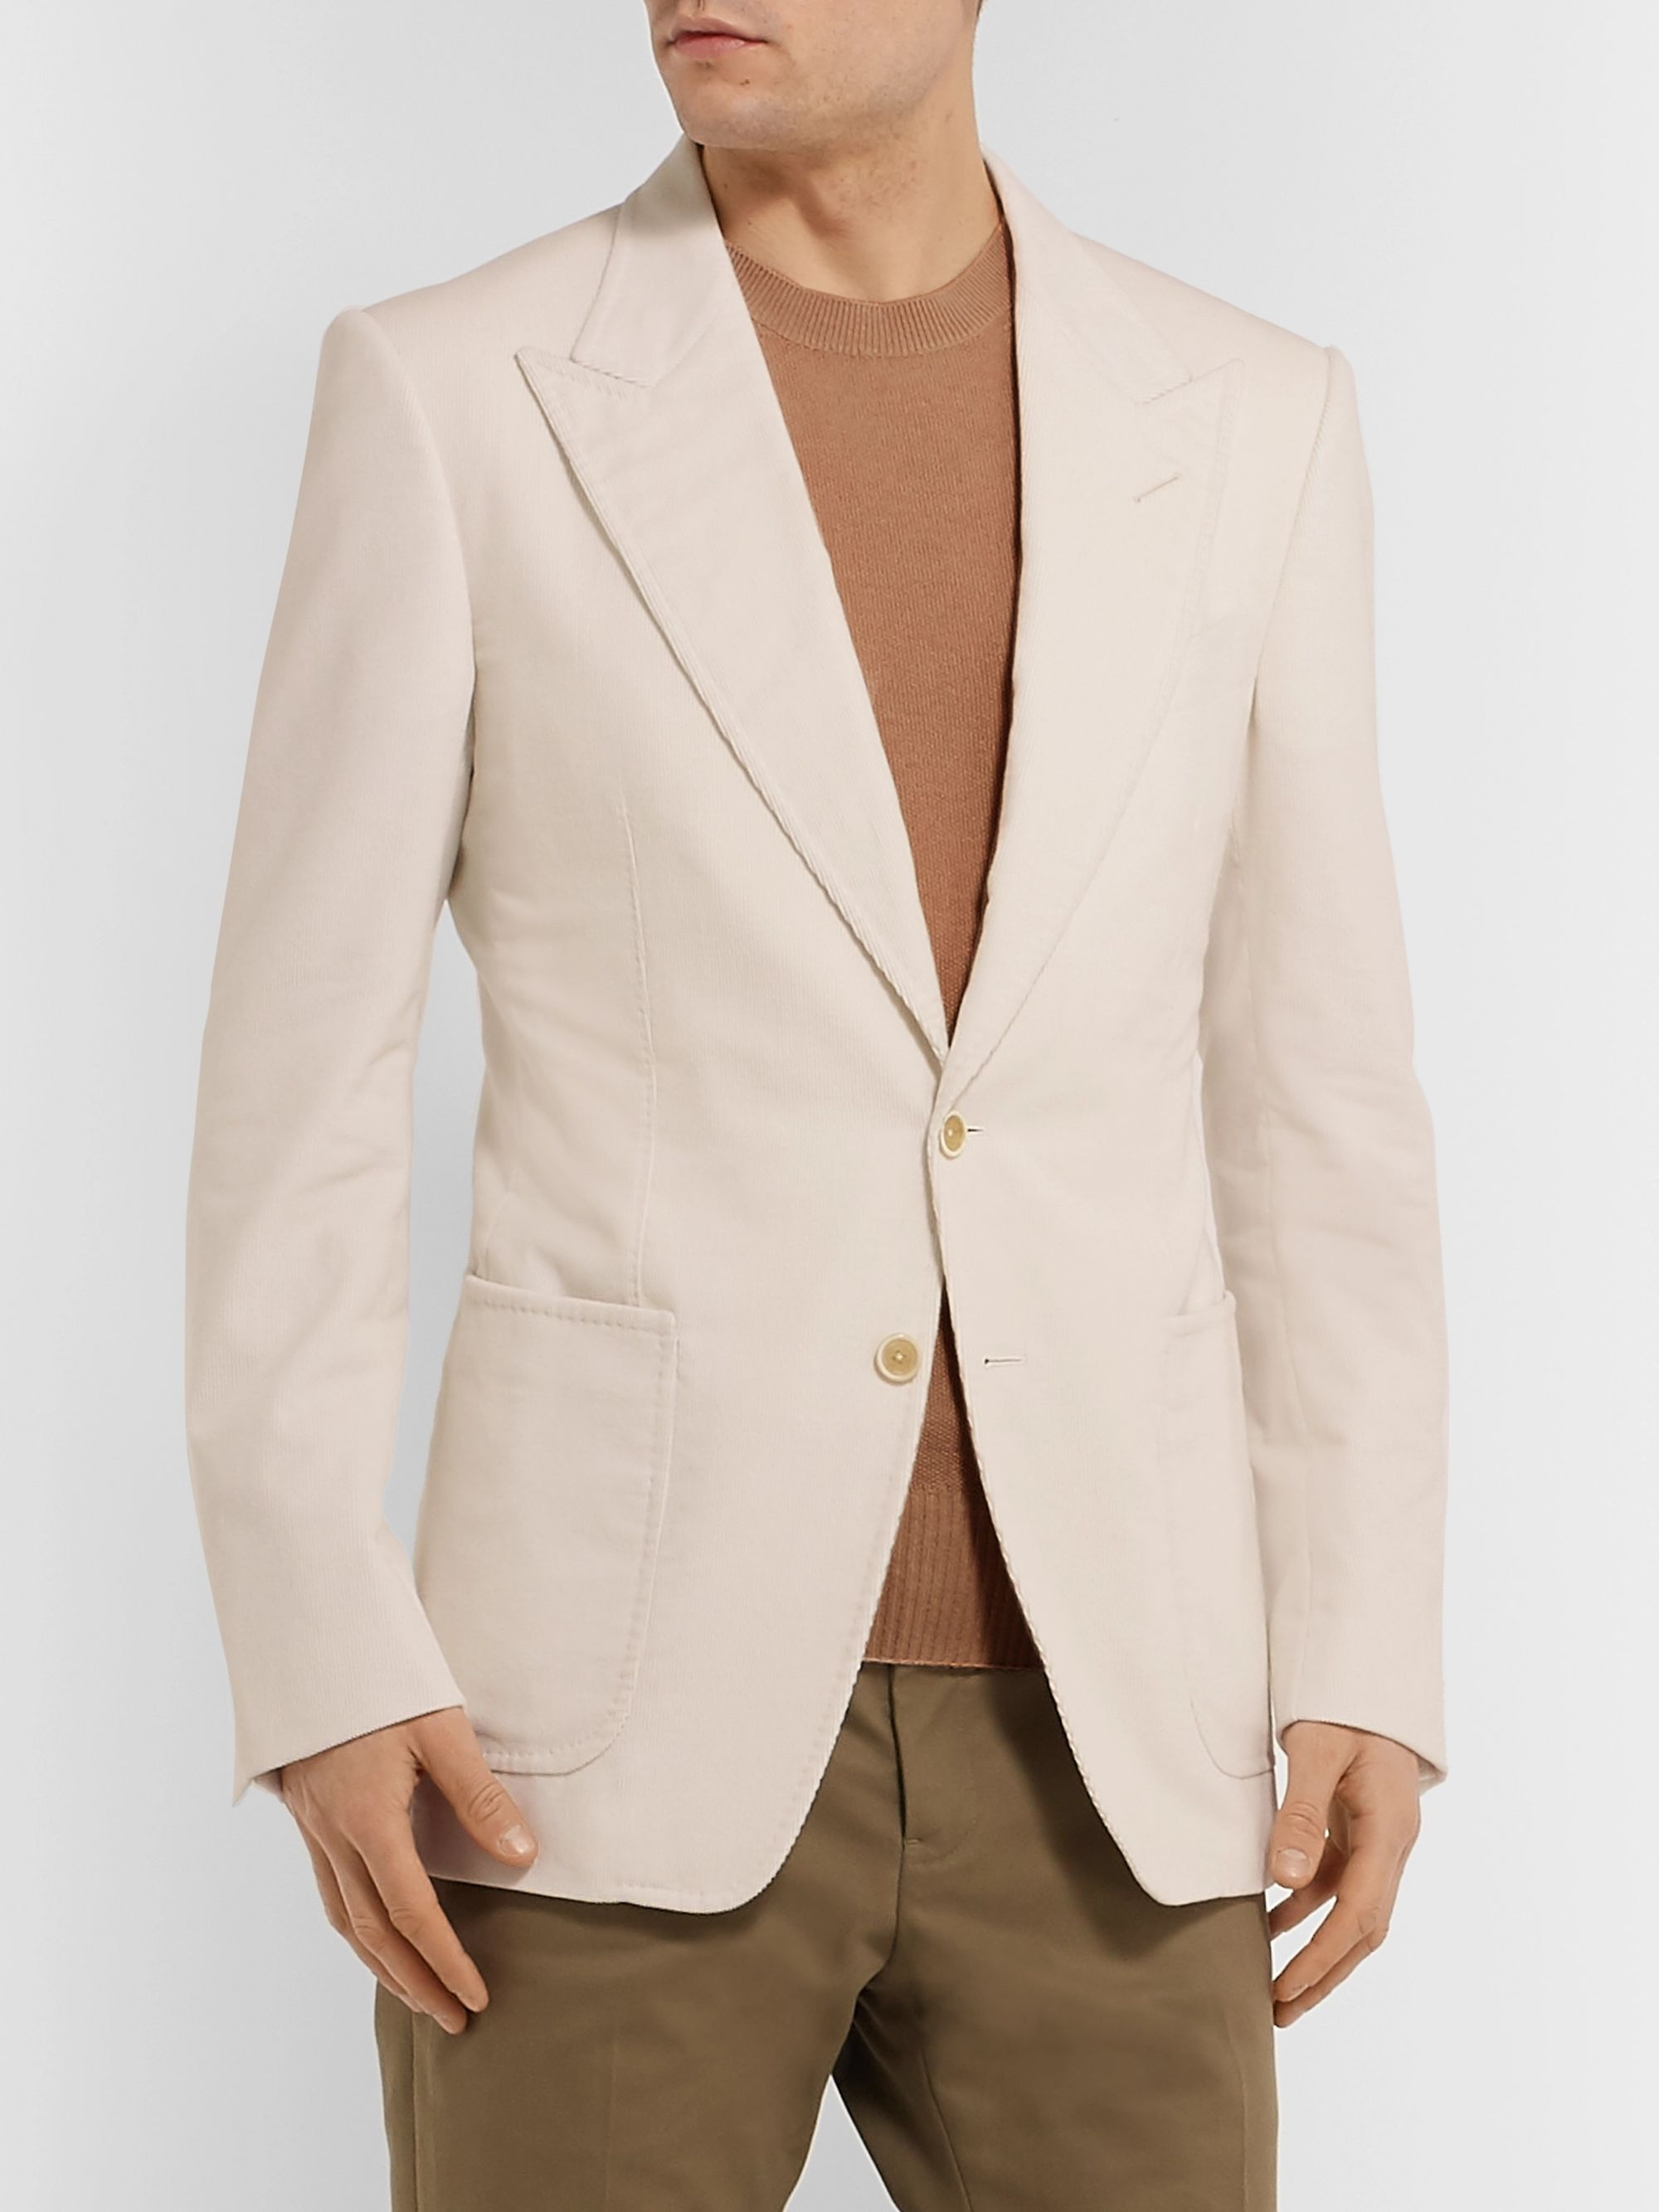 TOM FORD Cream Shelton Slim-Fit Cotton and Linen-Blend Corduroy Blazer